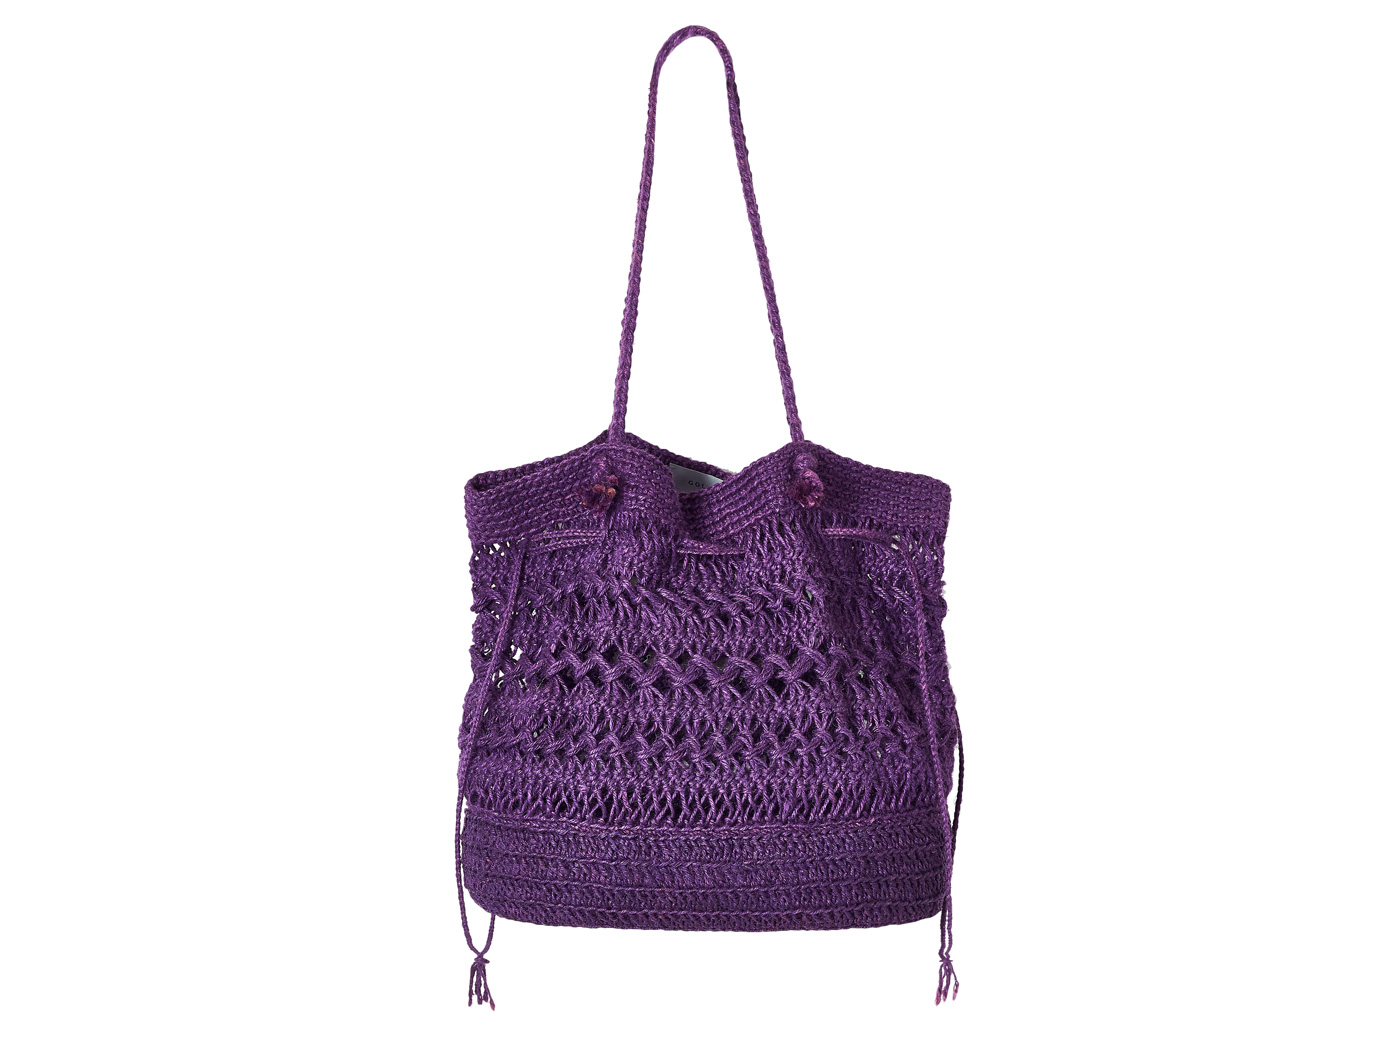 Golovina-fleur-knitted-bag-purple-1